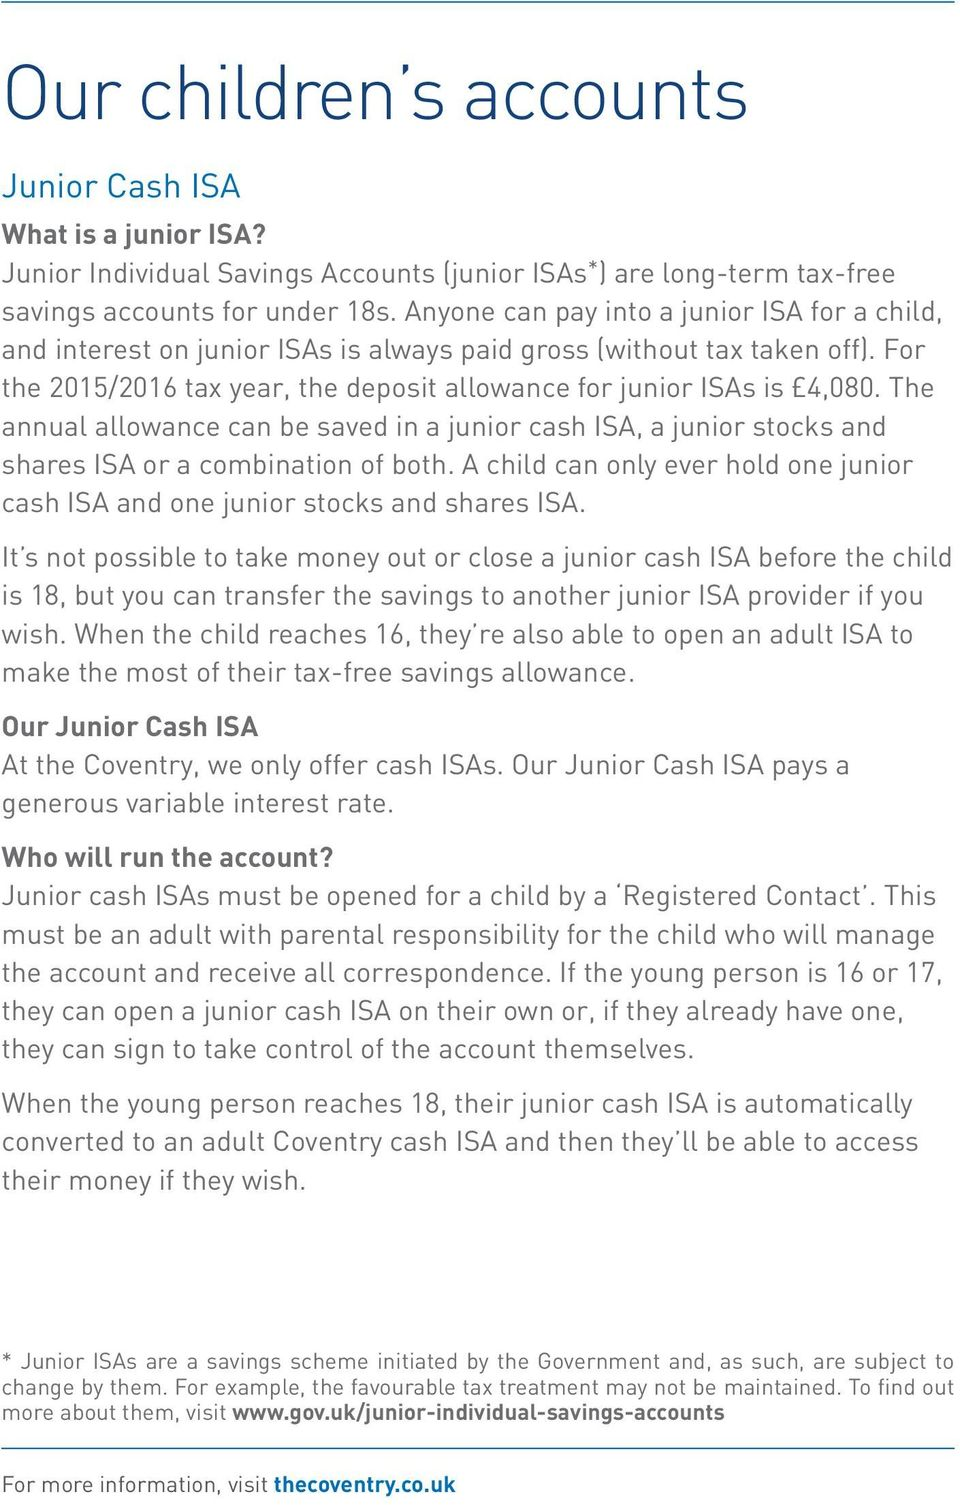 The annual allowance can be saved in a junior cash ISA, a junior stocks and shares ISA or a combination of both. A child can only ever hold one junior cash ISA and one junior stocks and shares ISA.